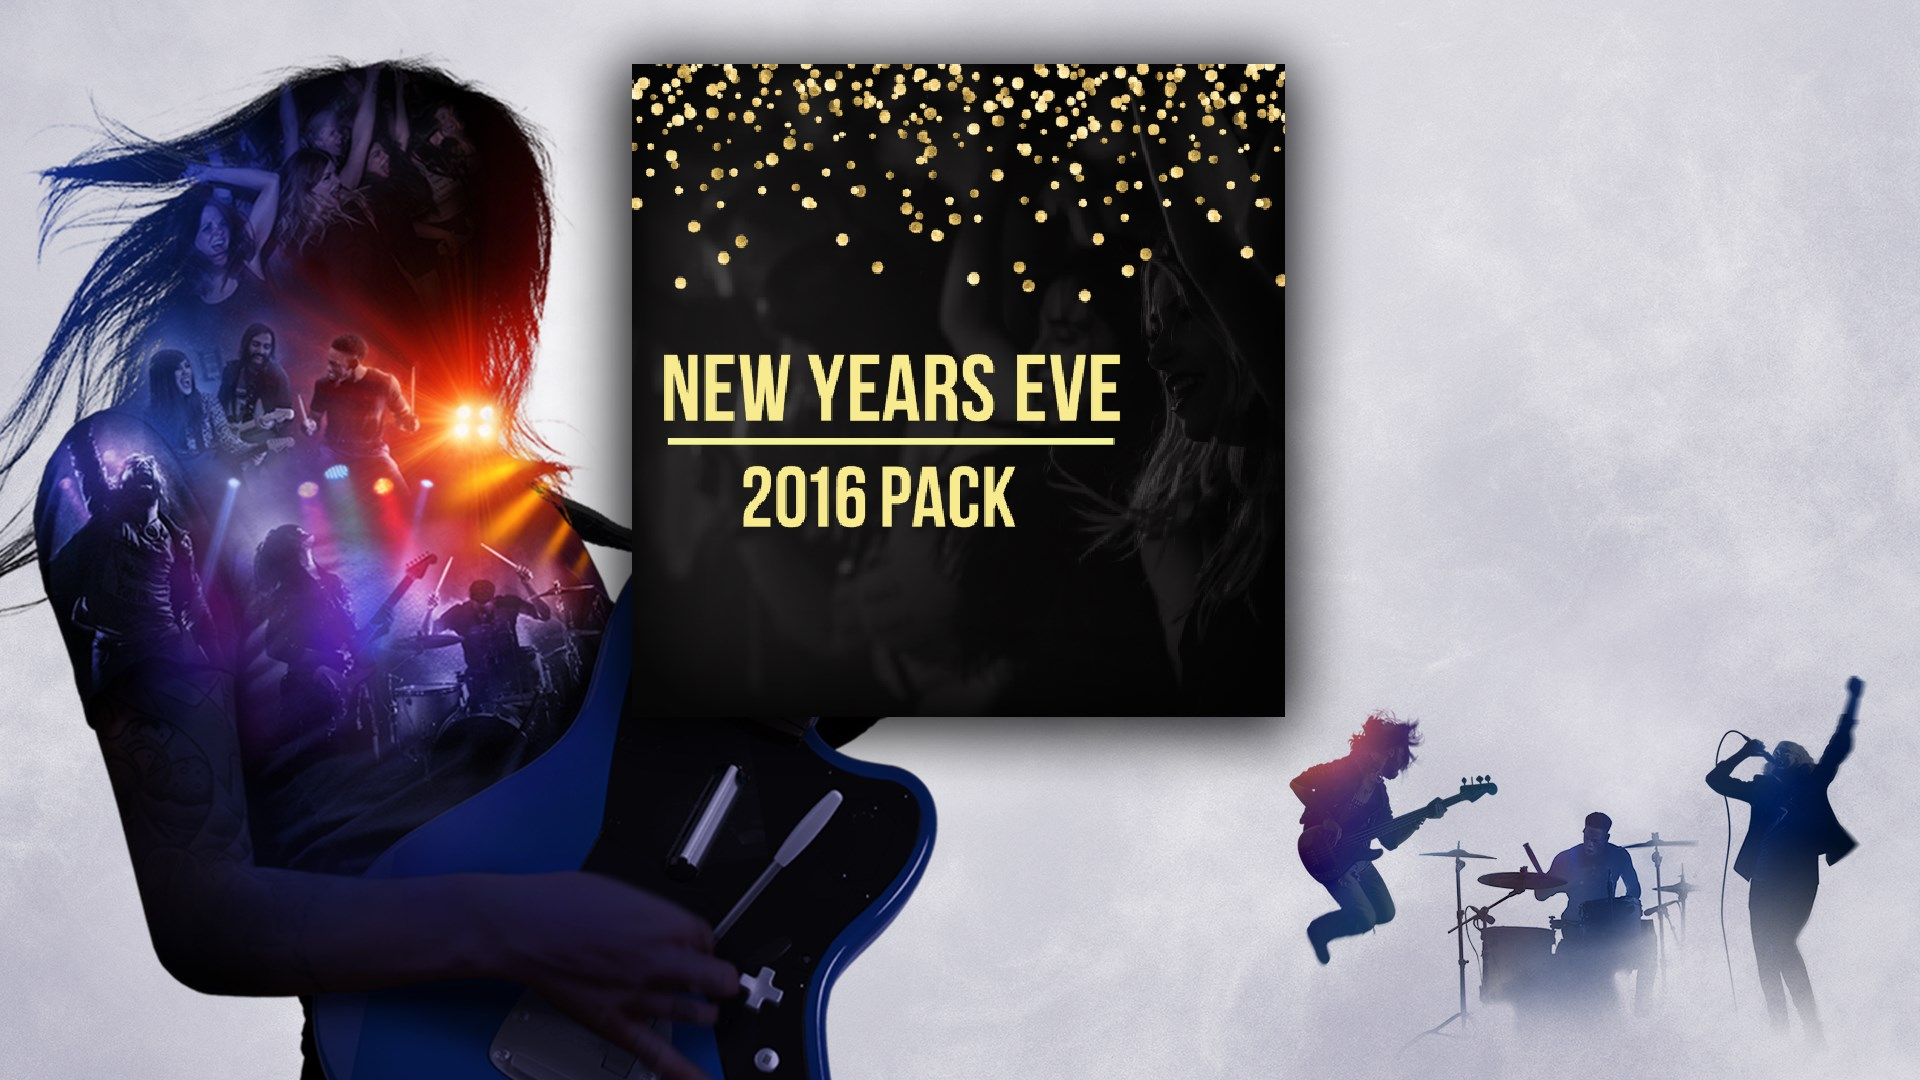 New Year's Eve 2016 Pack